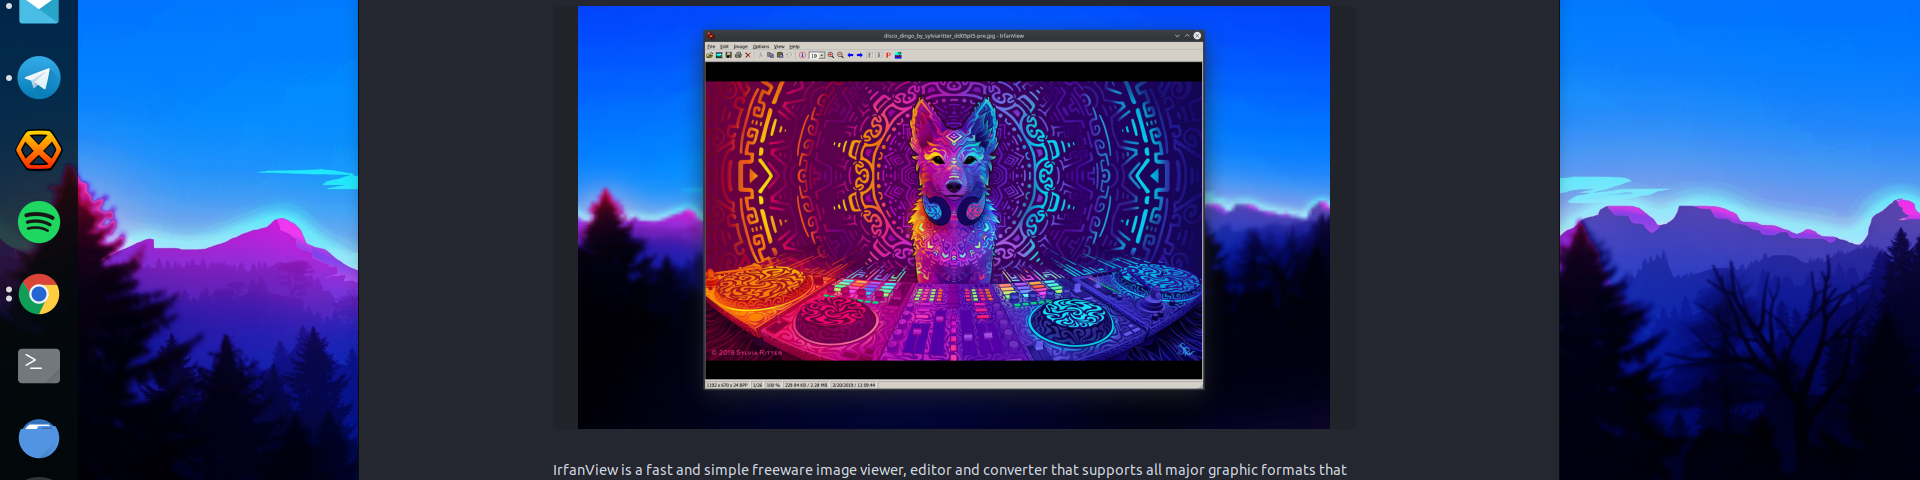 IrfanView is a fast and simple freeware image viewer, editor and converter